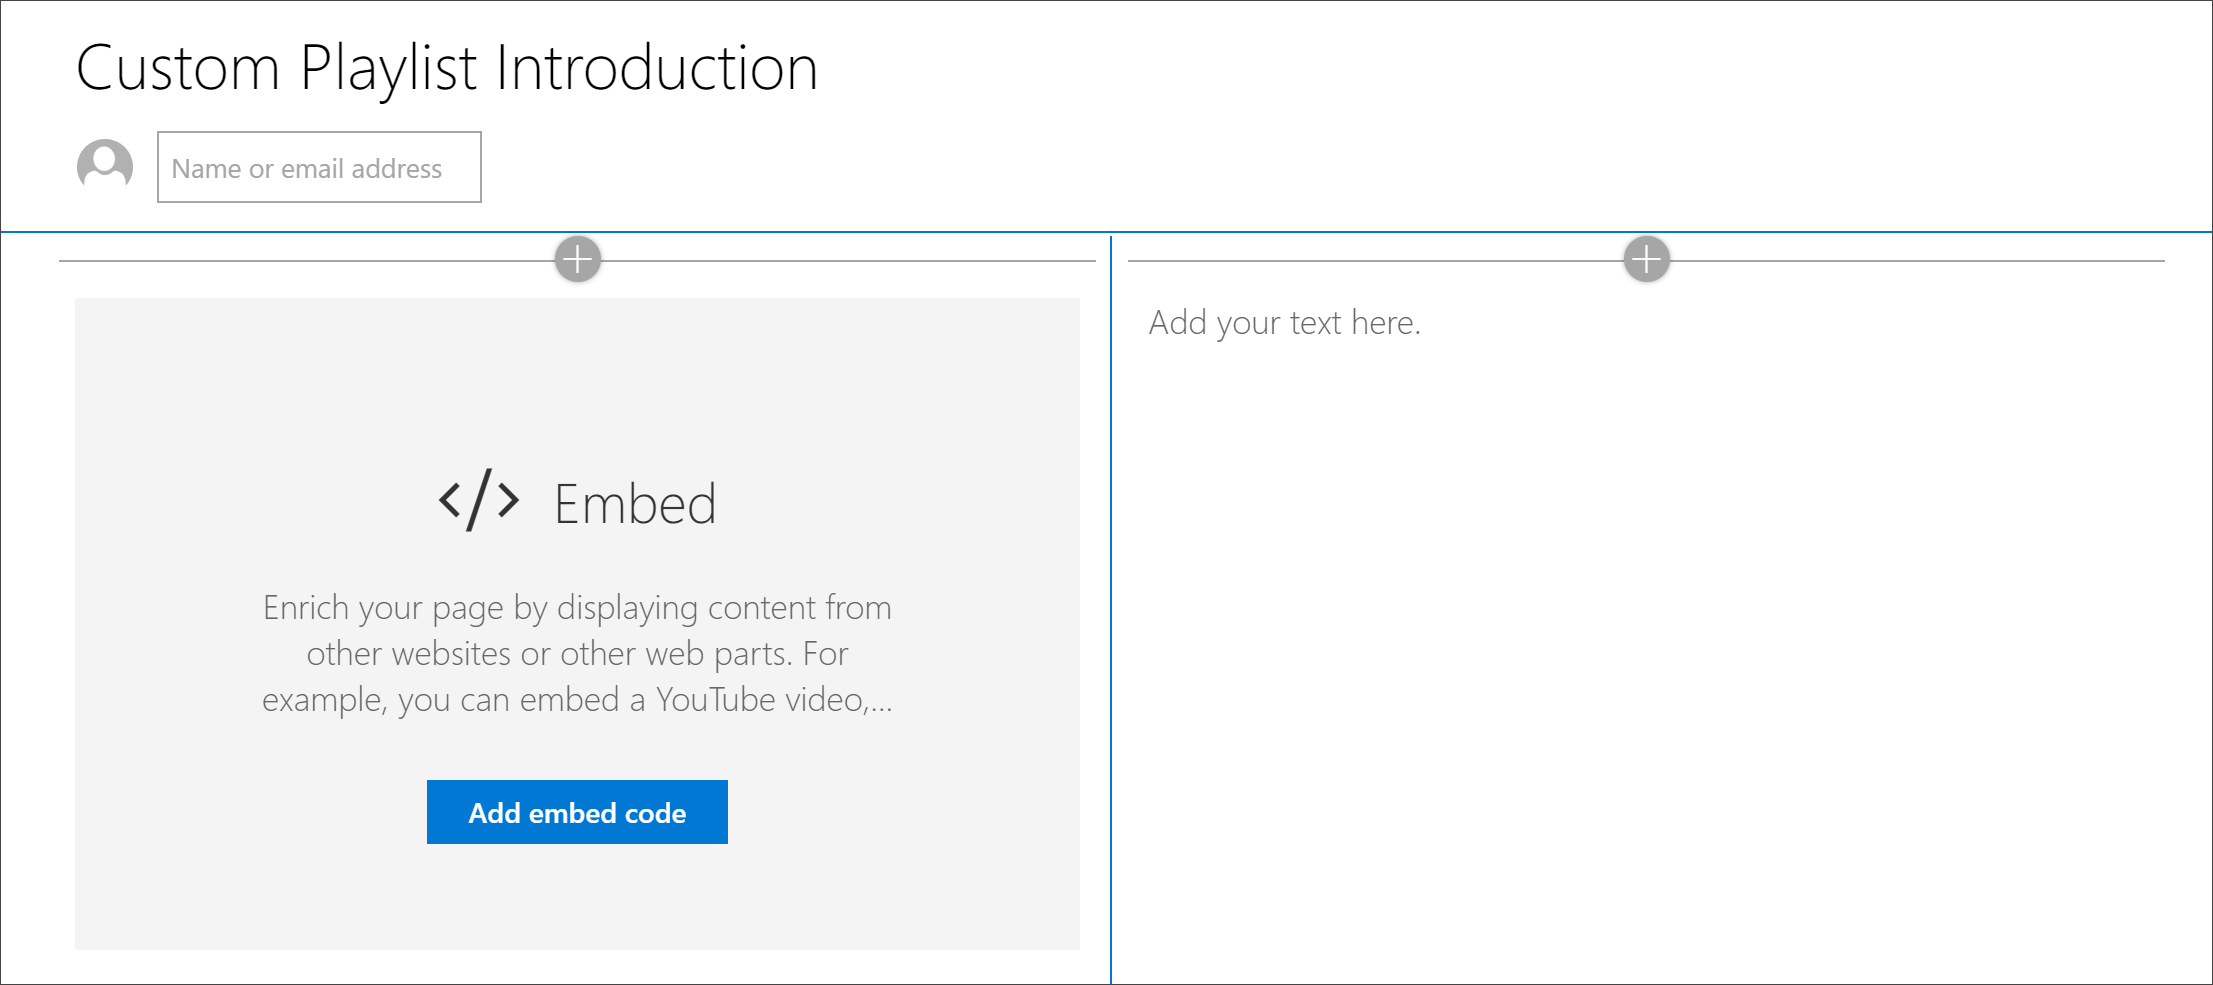 Create SharePoint pages for playlists | Microsoft Docs